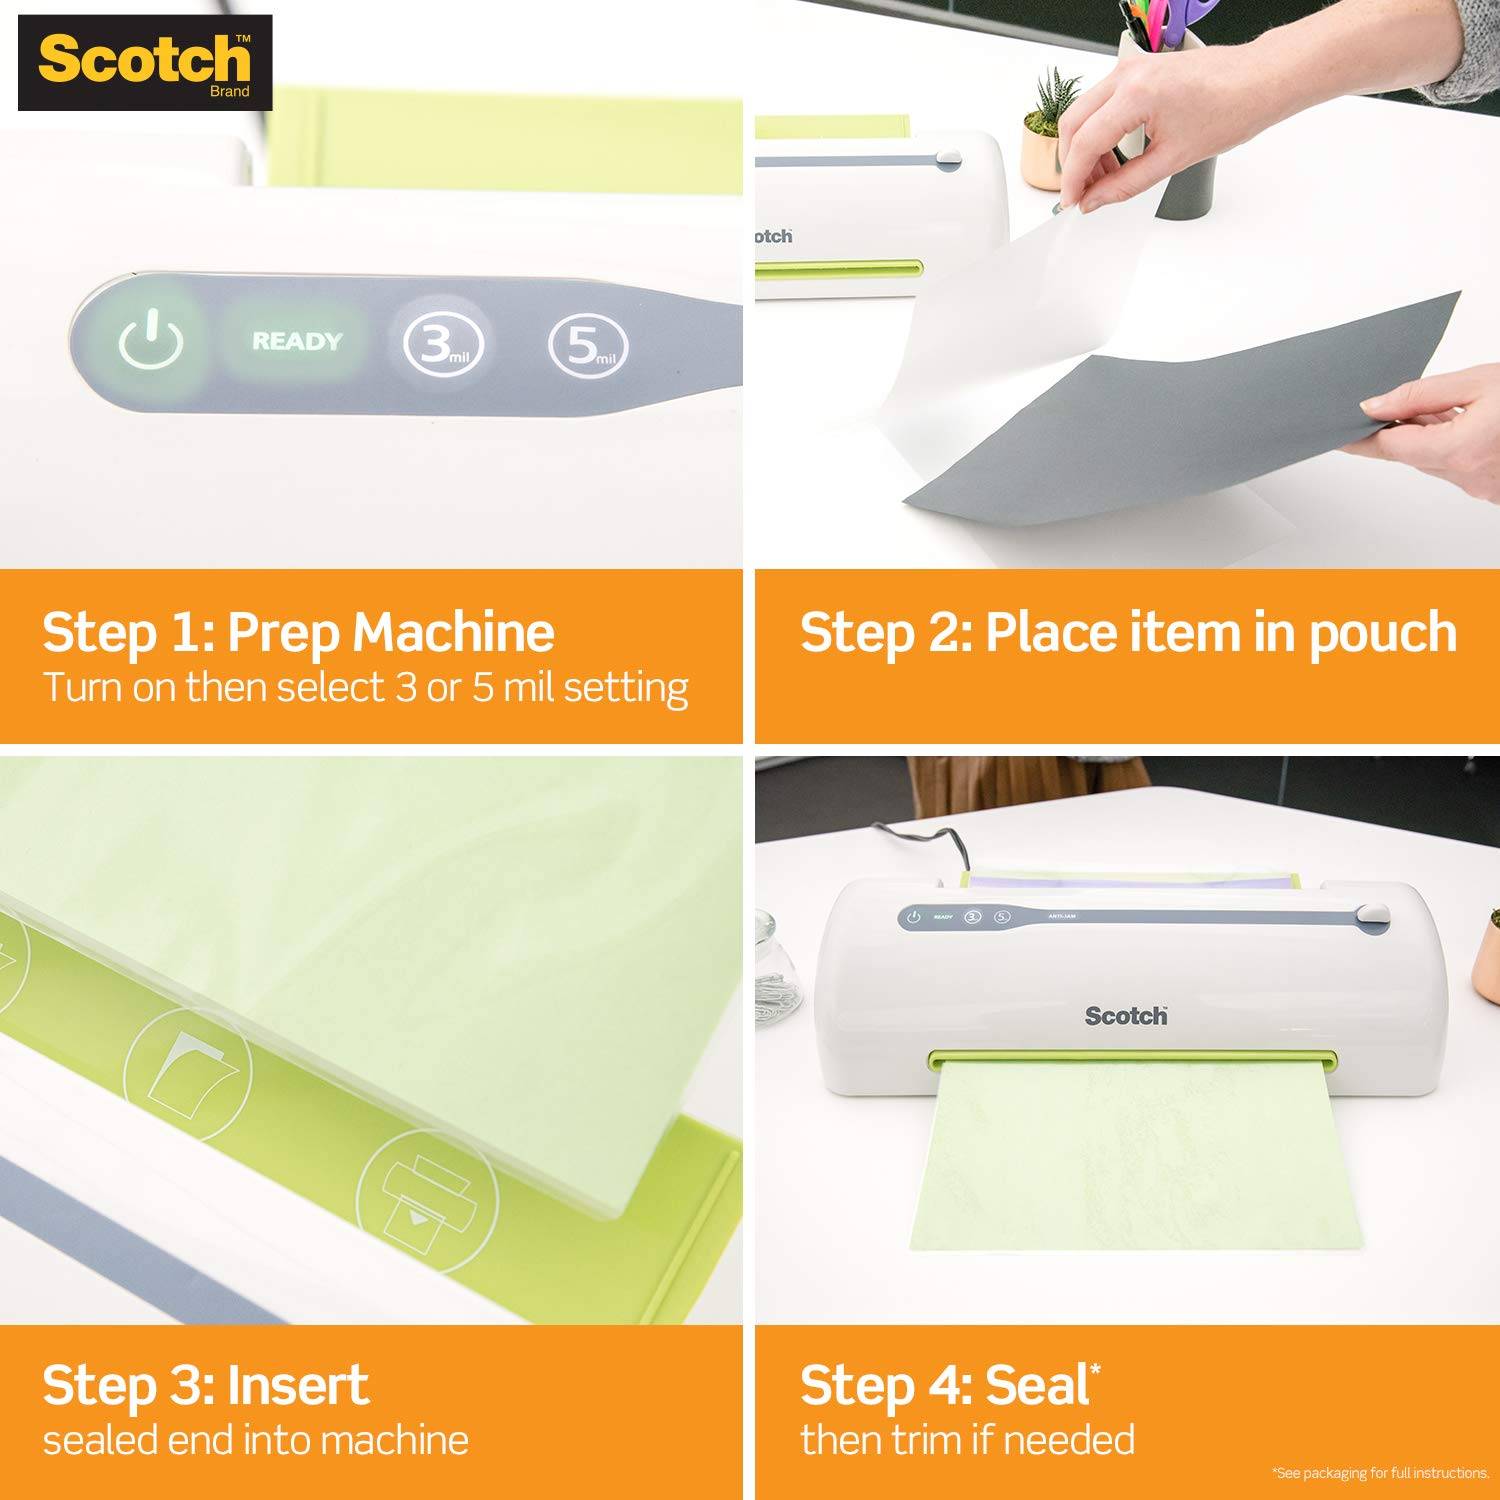 Scotch Thermal Laminating Pouches, 8.9 x 11.4-Inches, 5 mil thick, 50-Pack (TP5854-50) by Scotch Brand (Image #3)